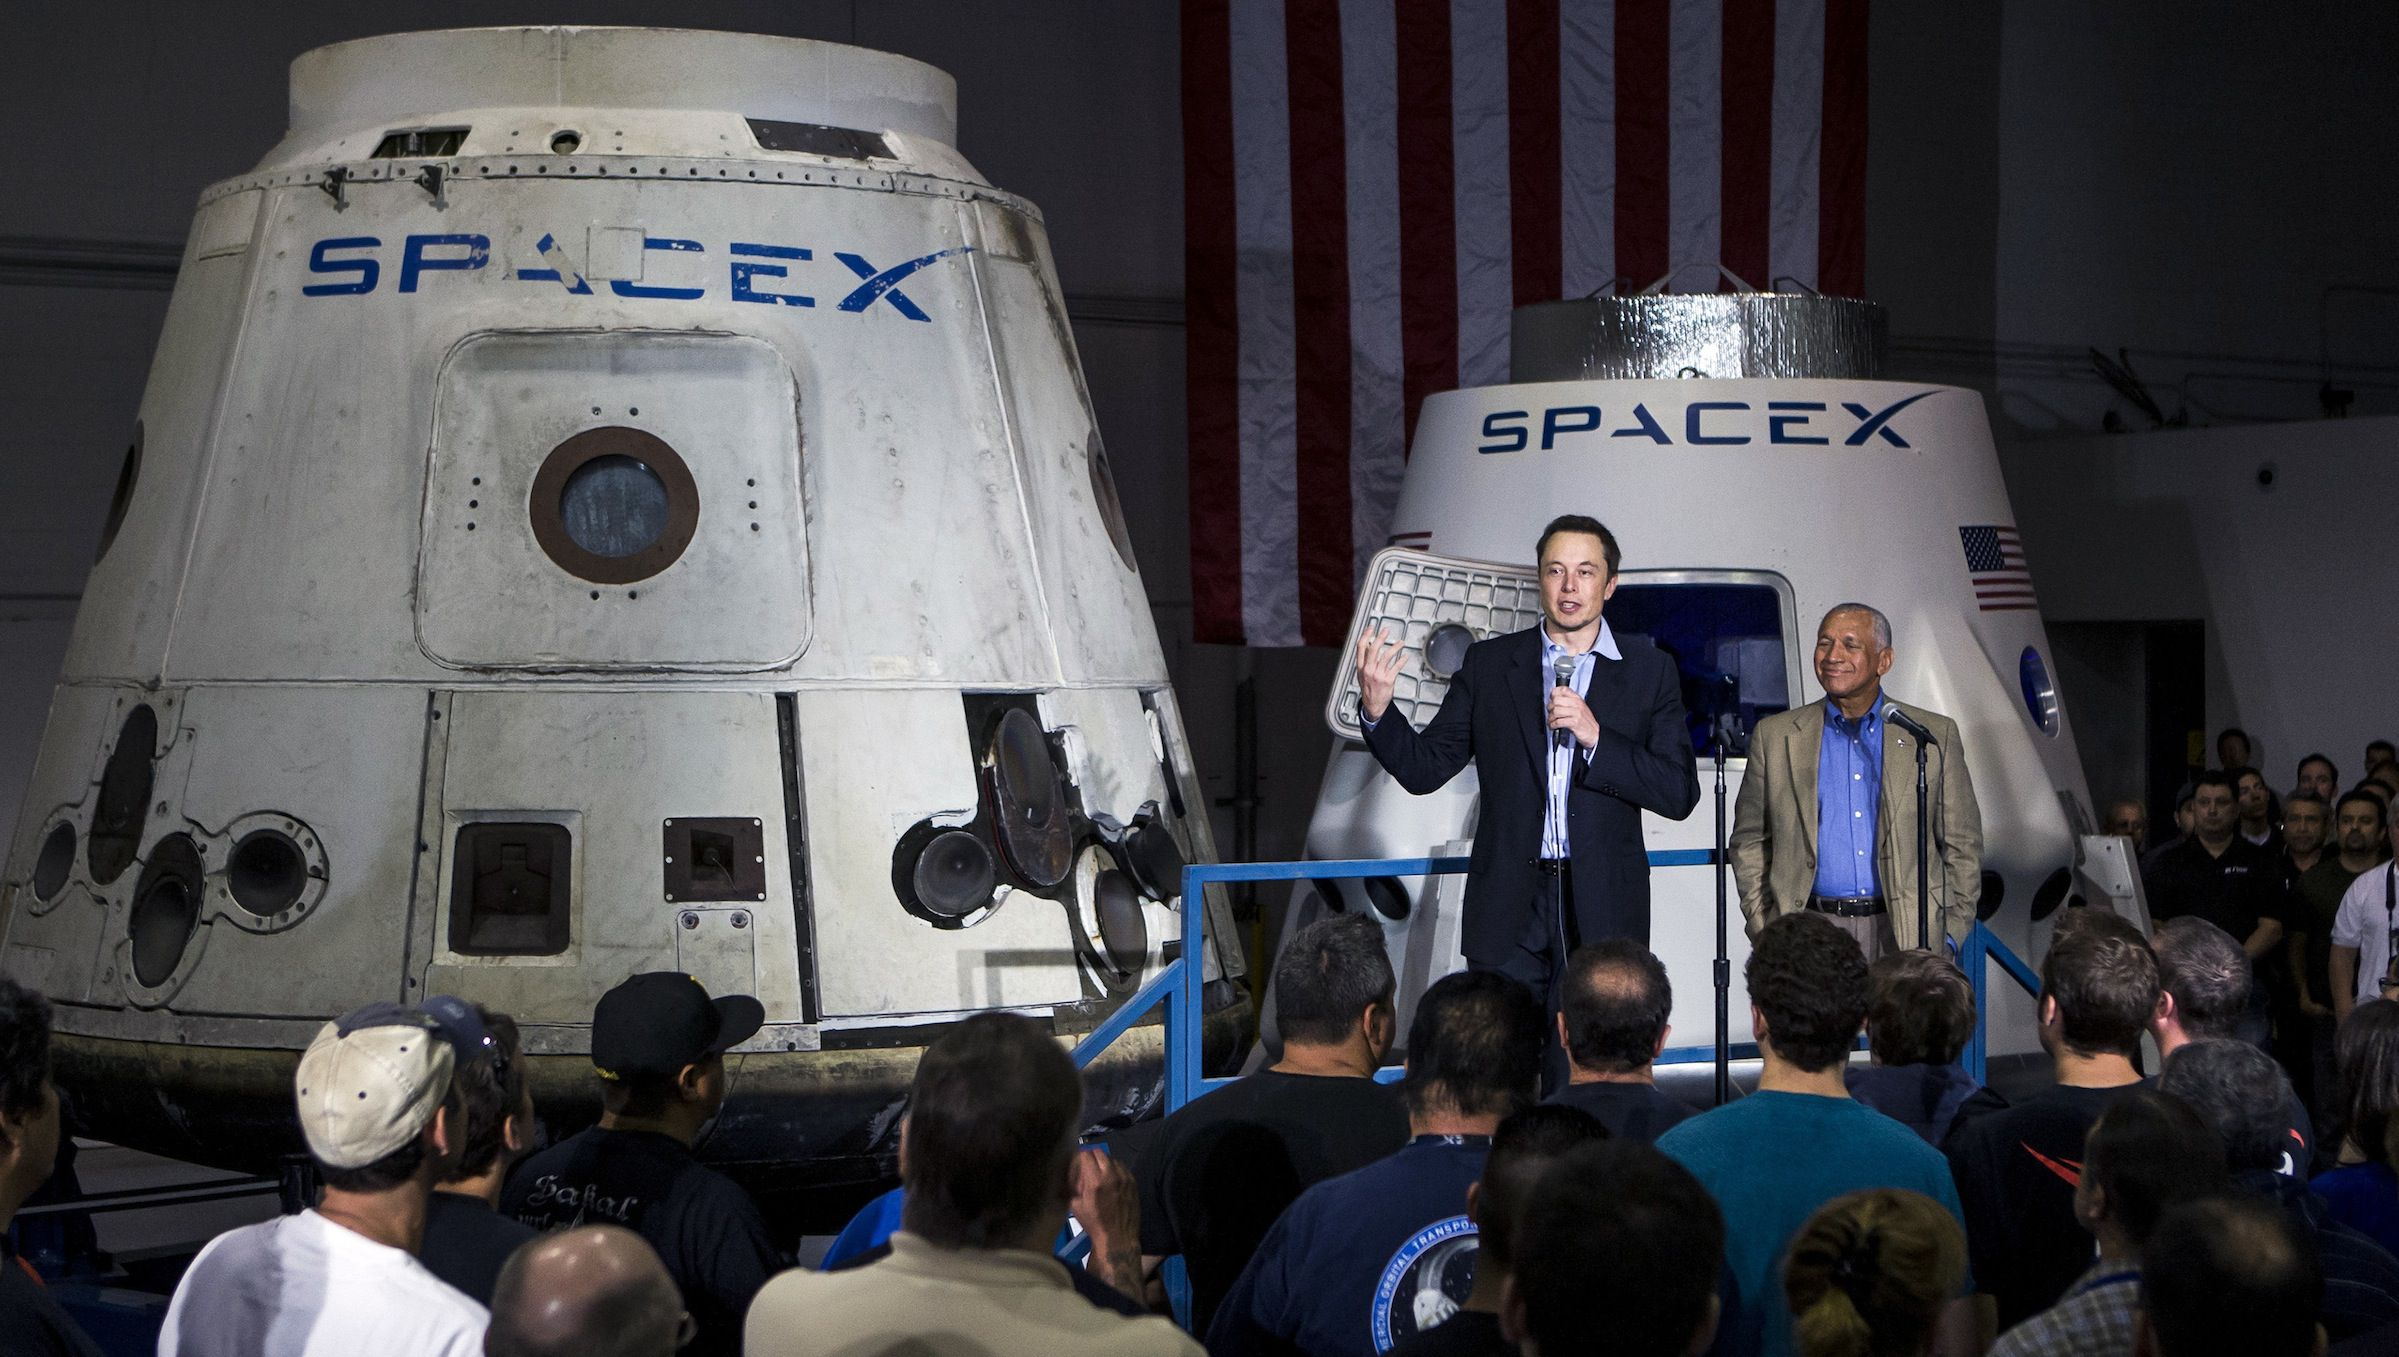 SpaceX CEO and Chief Designer Elon Musk (L) and NASA Administrator Charles Bolden address SpaceX employees following the first successful mission by a private company to carry supplies to the International Space Station at the SpaceX facility in Hawthorne, California June 14, 2012.  REUTERS/Bret Hartman   (UNITED STATES - Tags: SCIENCE TECHNOLOGY) - RTR33M7D